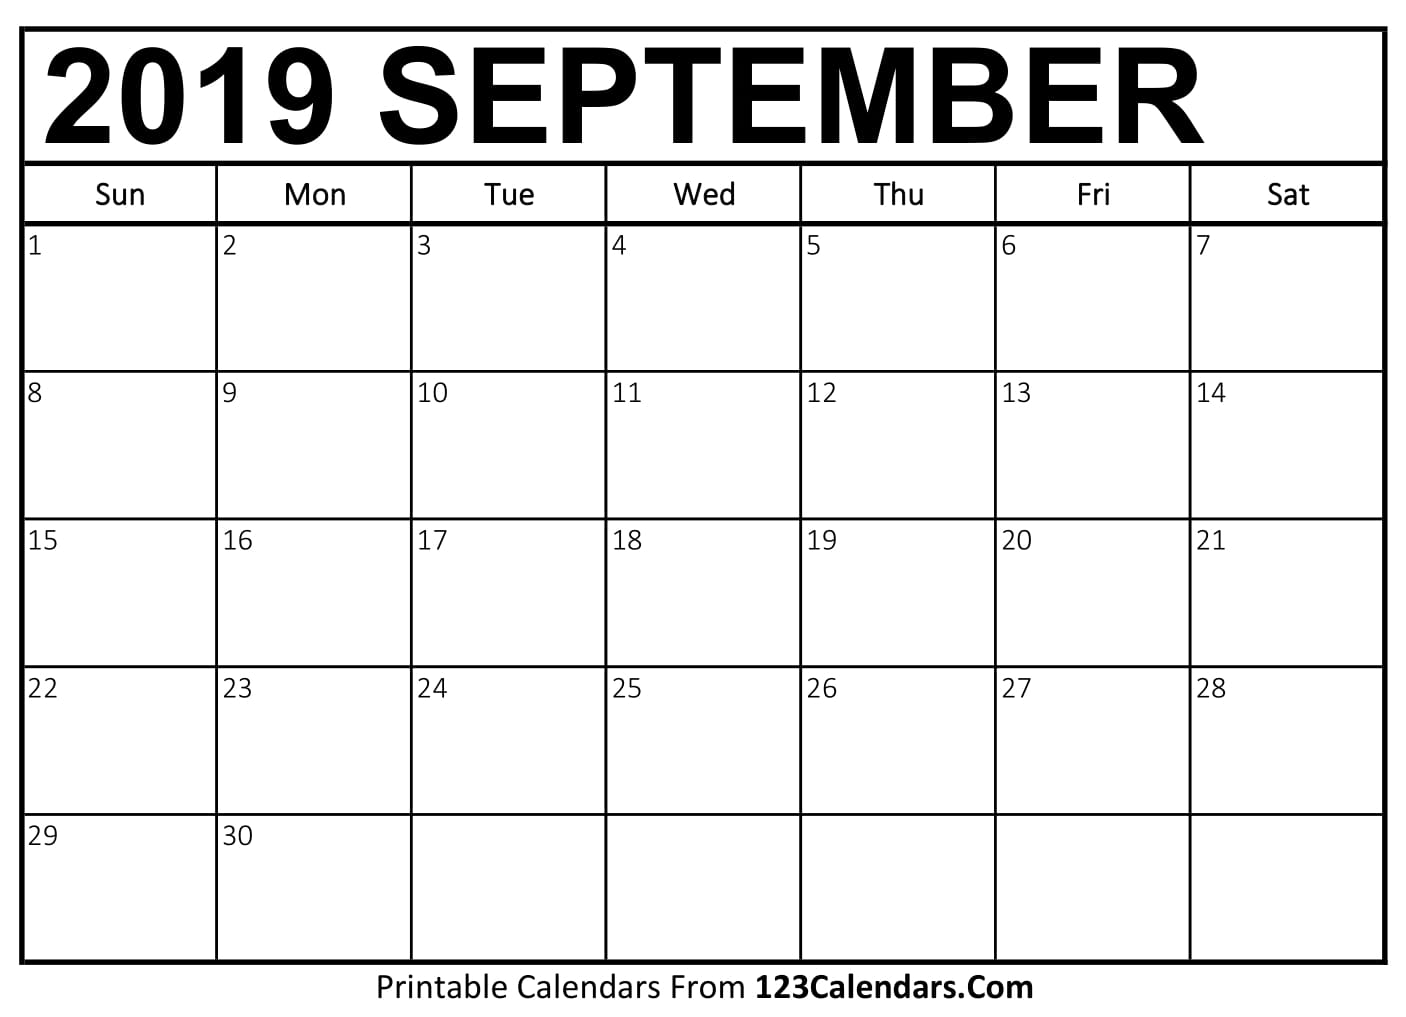 photo regarding September Printable Calendar named September 2019 Printable Calendar